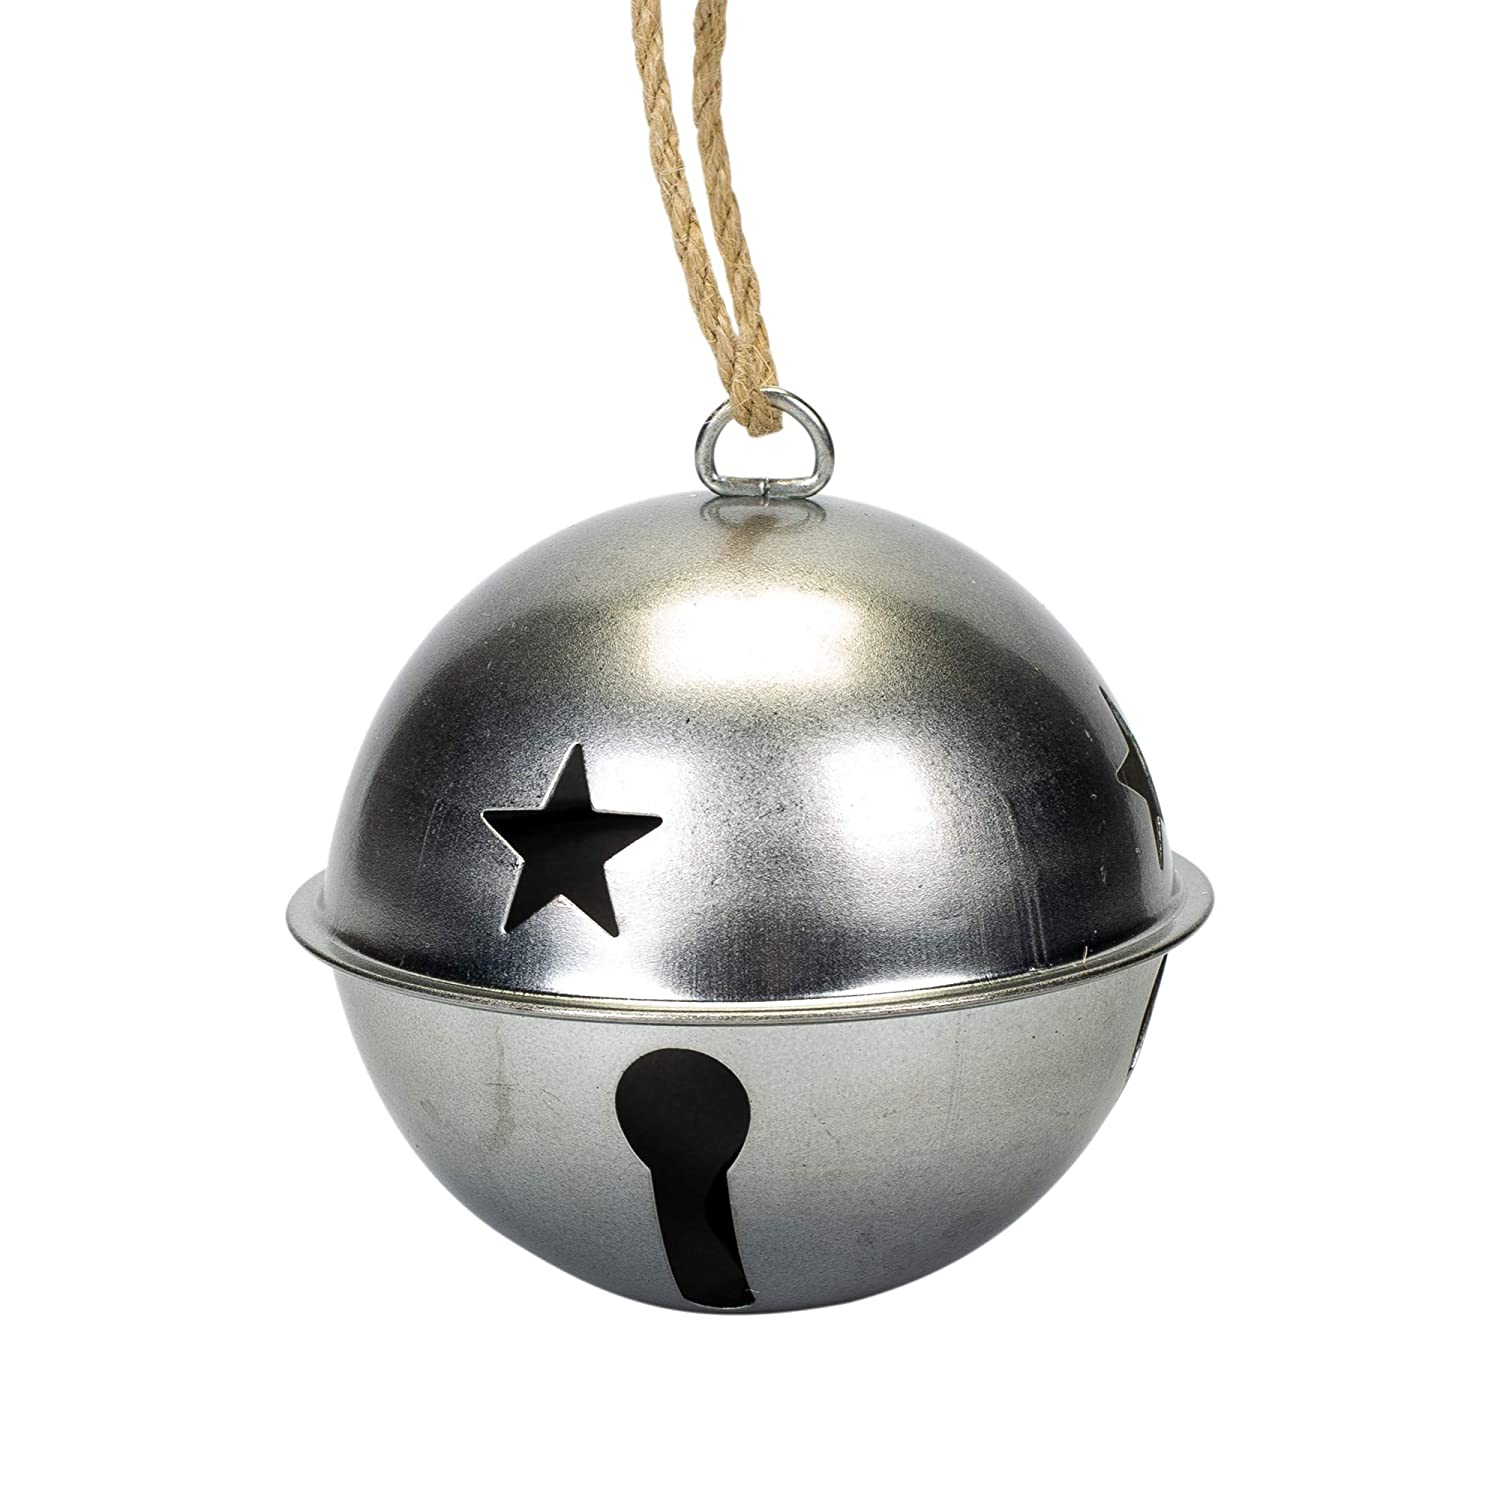 Midwest-CBK Jingle Bell Silver Toned Metal Christmas 3 x 3 Decorative Hanging Ornament